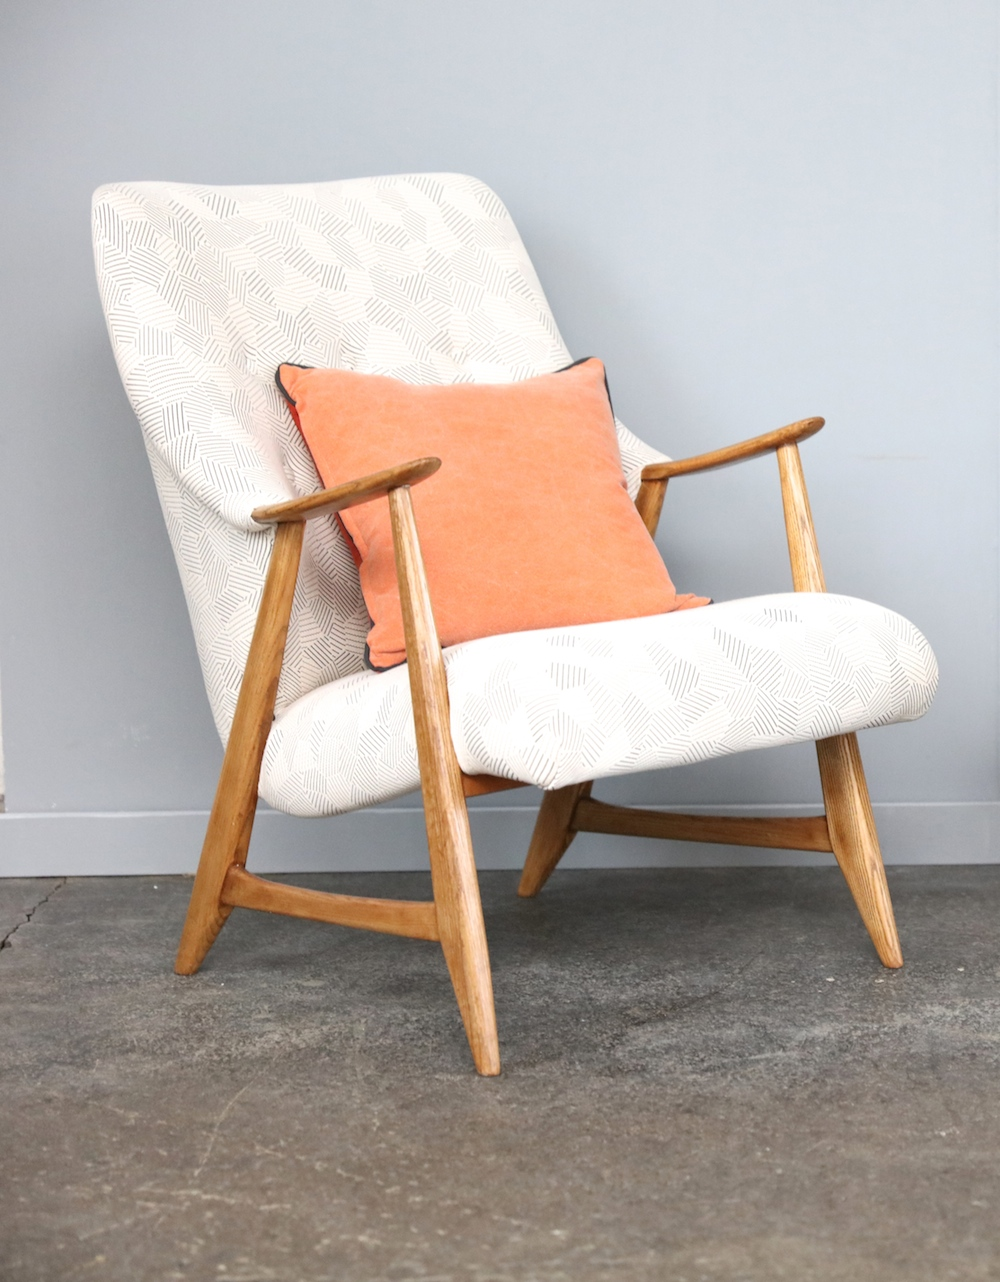 FLorrie_and_Bill_vintage_chair